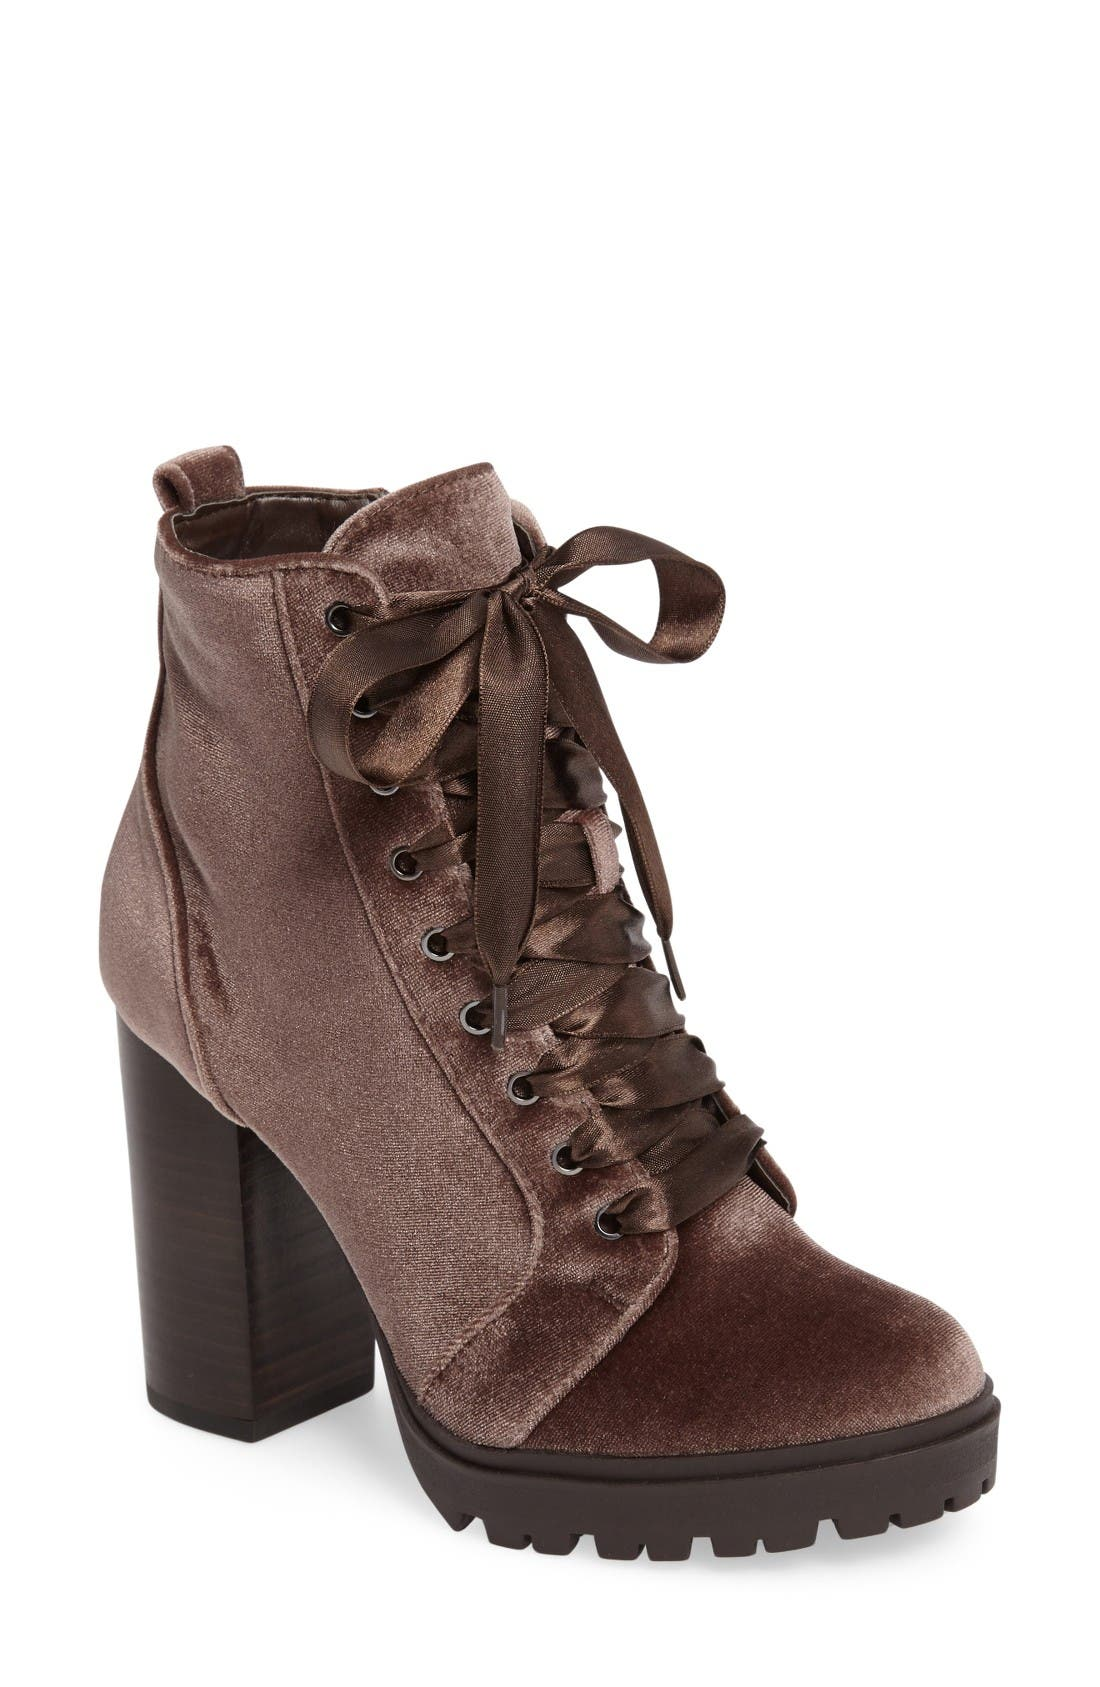 Alternate Image 1 Selected - Steve Madden Laurie Platform Bootie (Women)